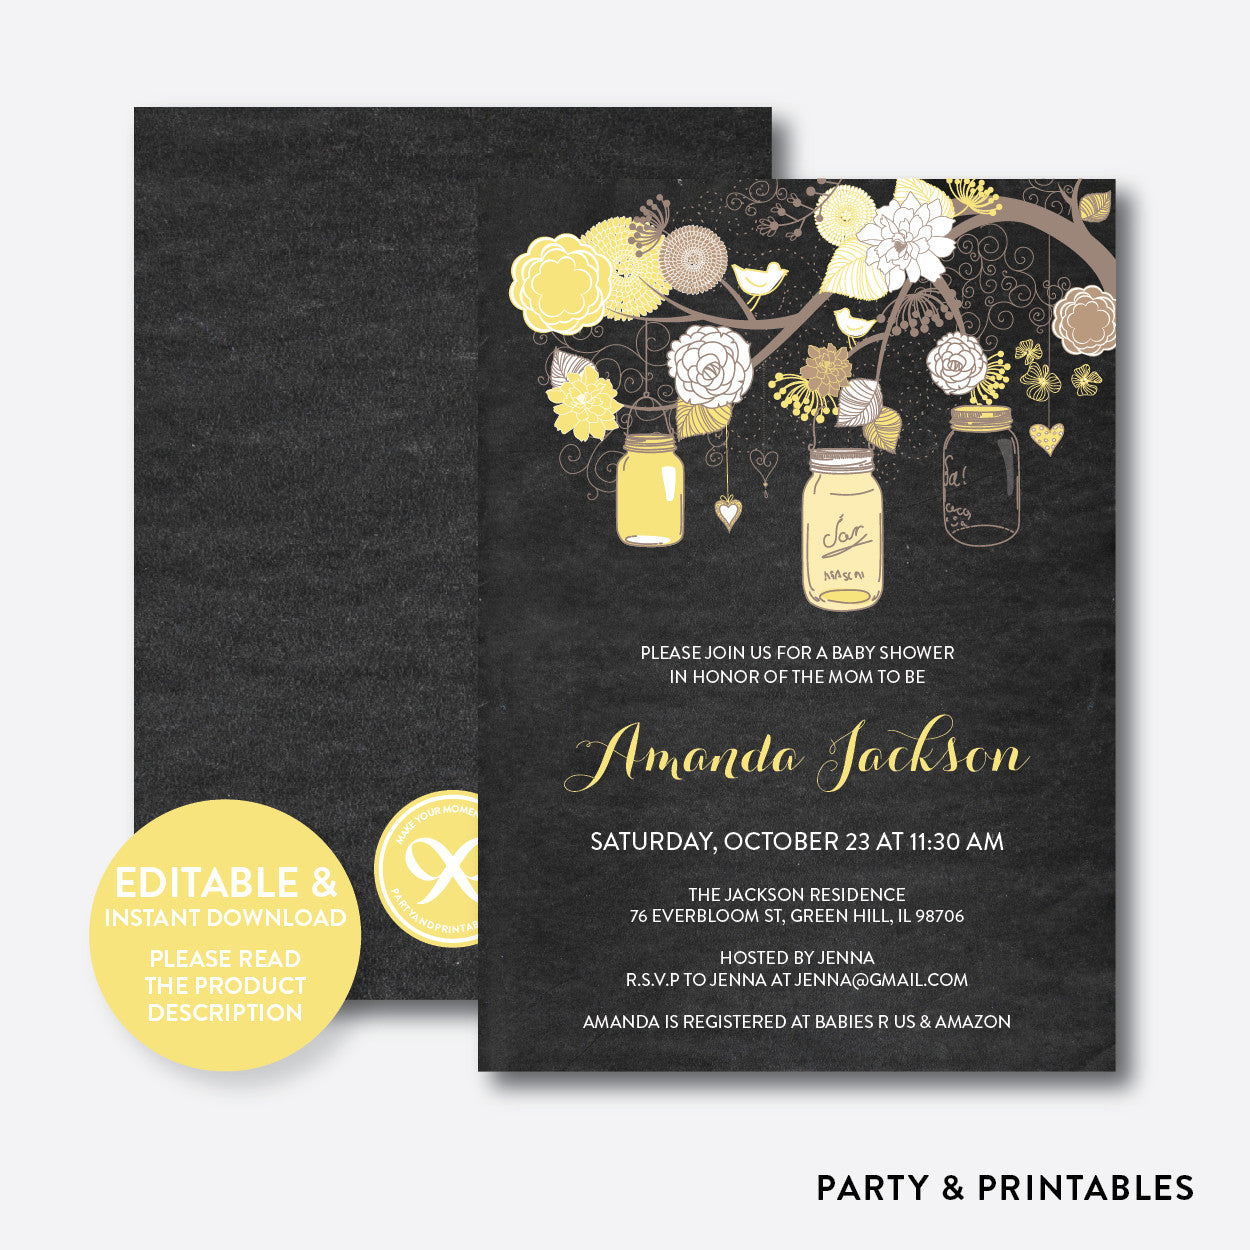 Floral Mason Jar Chalkboard Baby Shower Invitation / Editable / Instant Download (CBS.32), invitation - Party and Printables